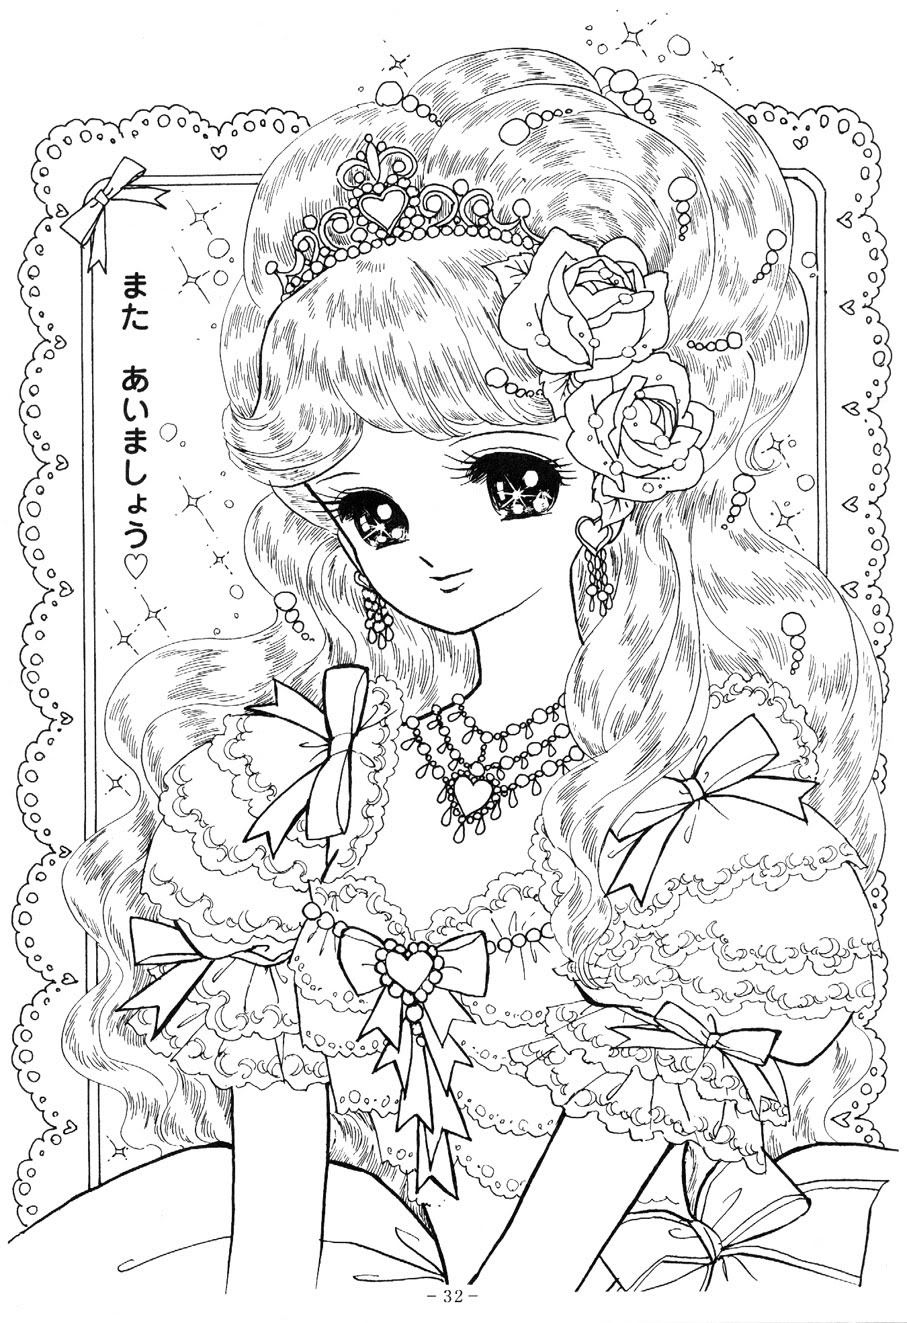 cute kawaii princess coloring pages cute kawaii disney princess coloring pages animationsa2z princess kawaii pages coloring cute